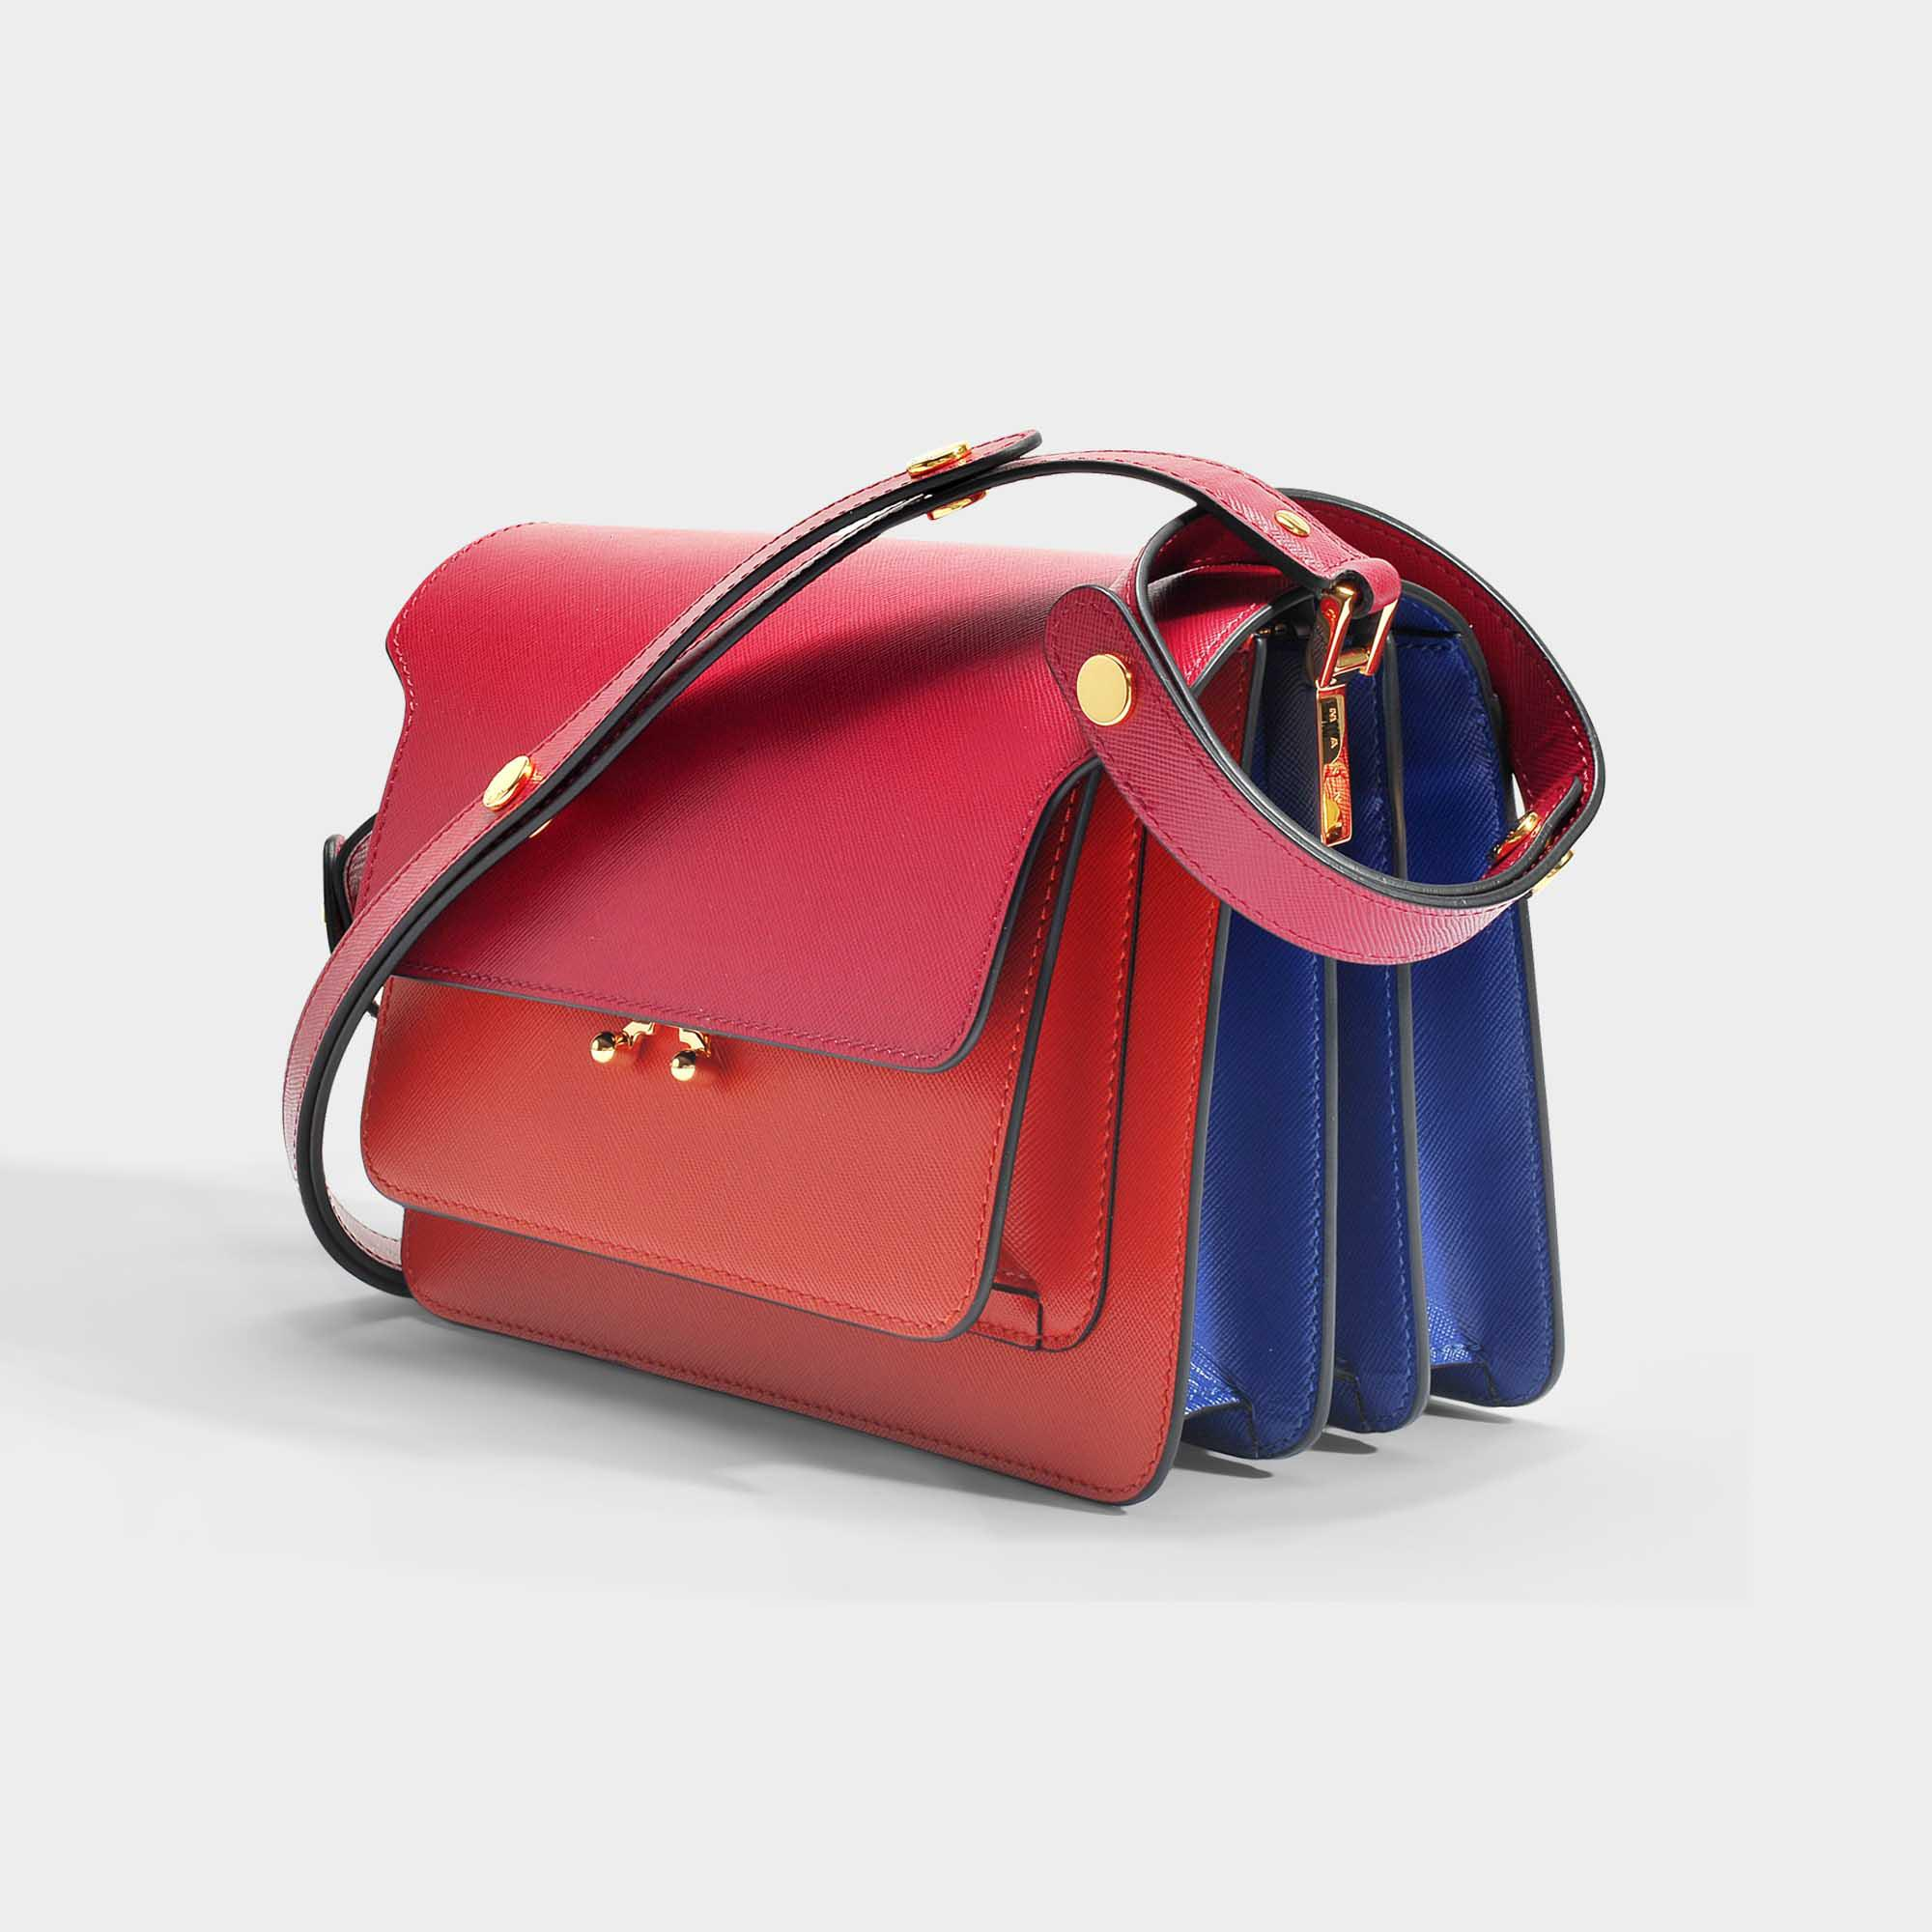 d2f8eb70e5e2 marni-Multicoloured-Trunk-Medium-Tricolor-Bag-In-Cherry-Tile-And-Bluet- Saffiano-Calf.jpeg